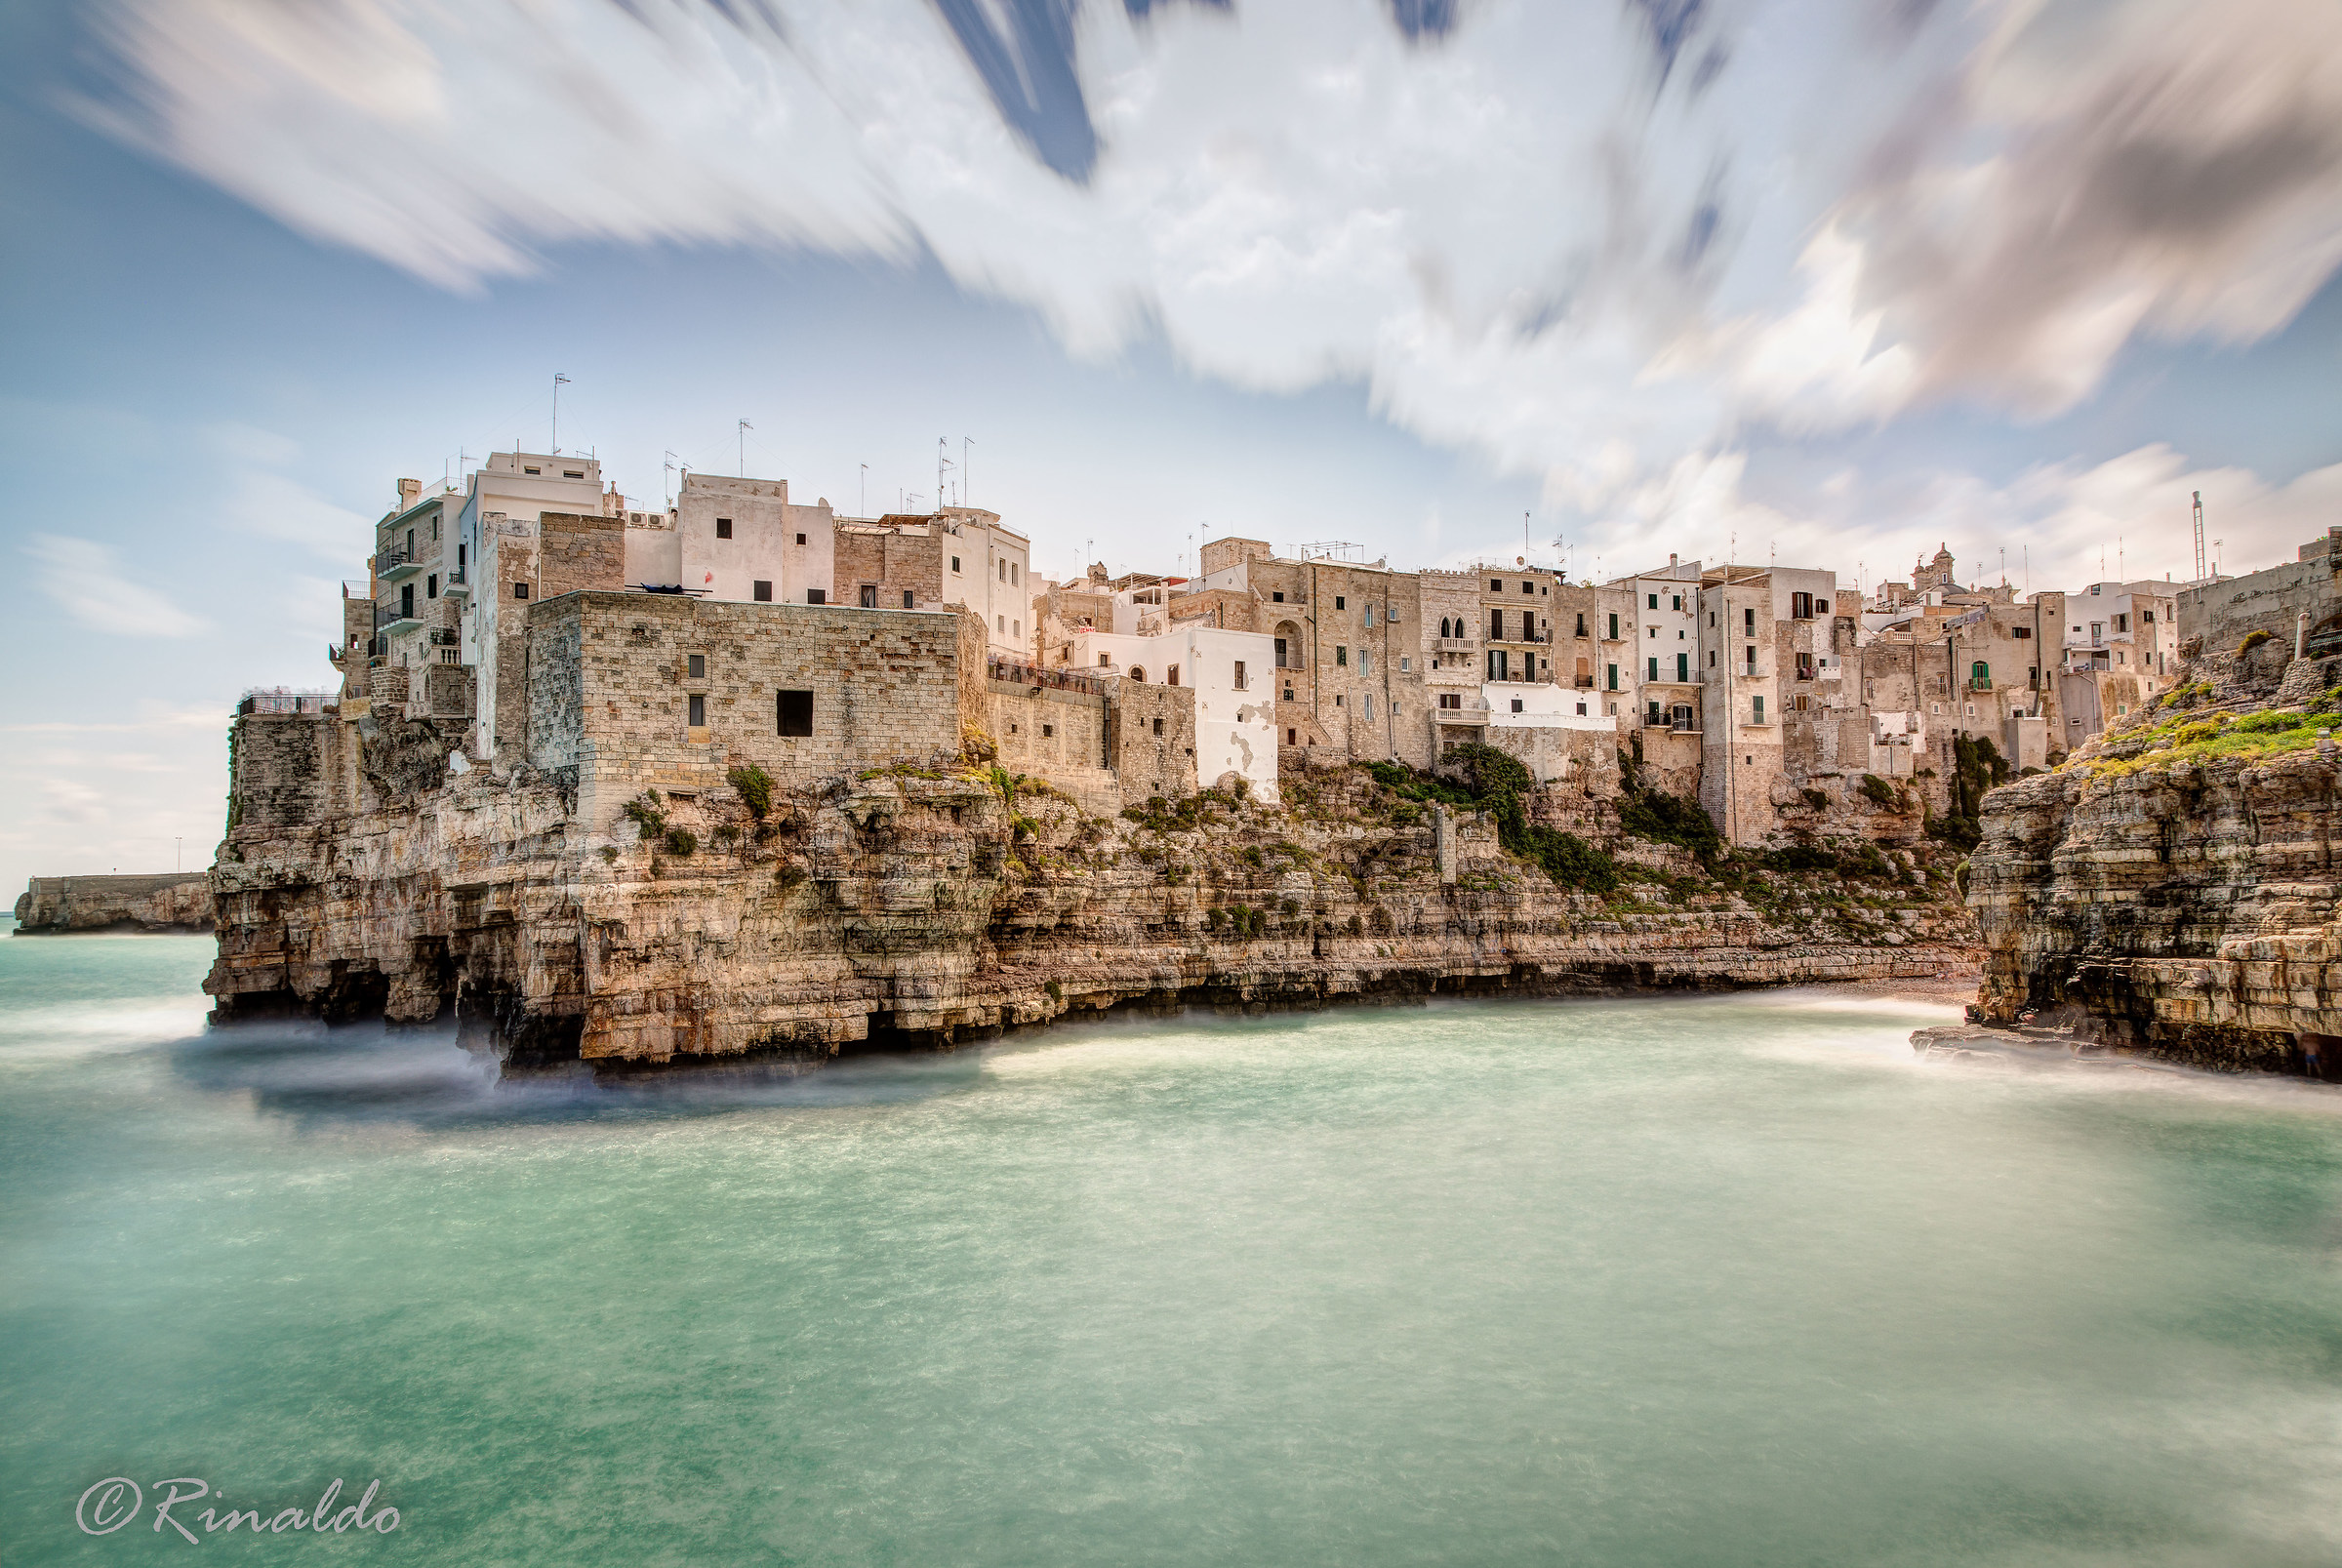 The Mistral, the wind friend of Polignano a Mare...